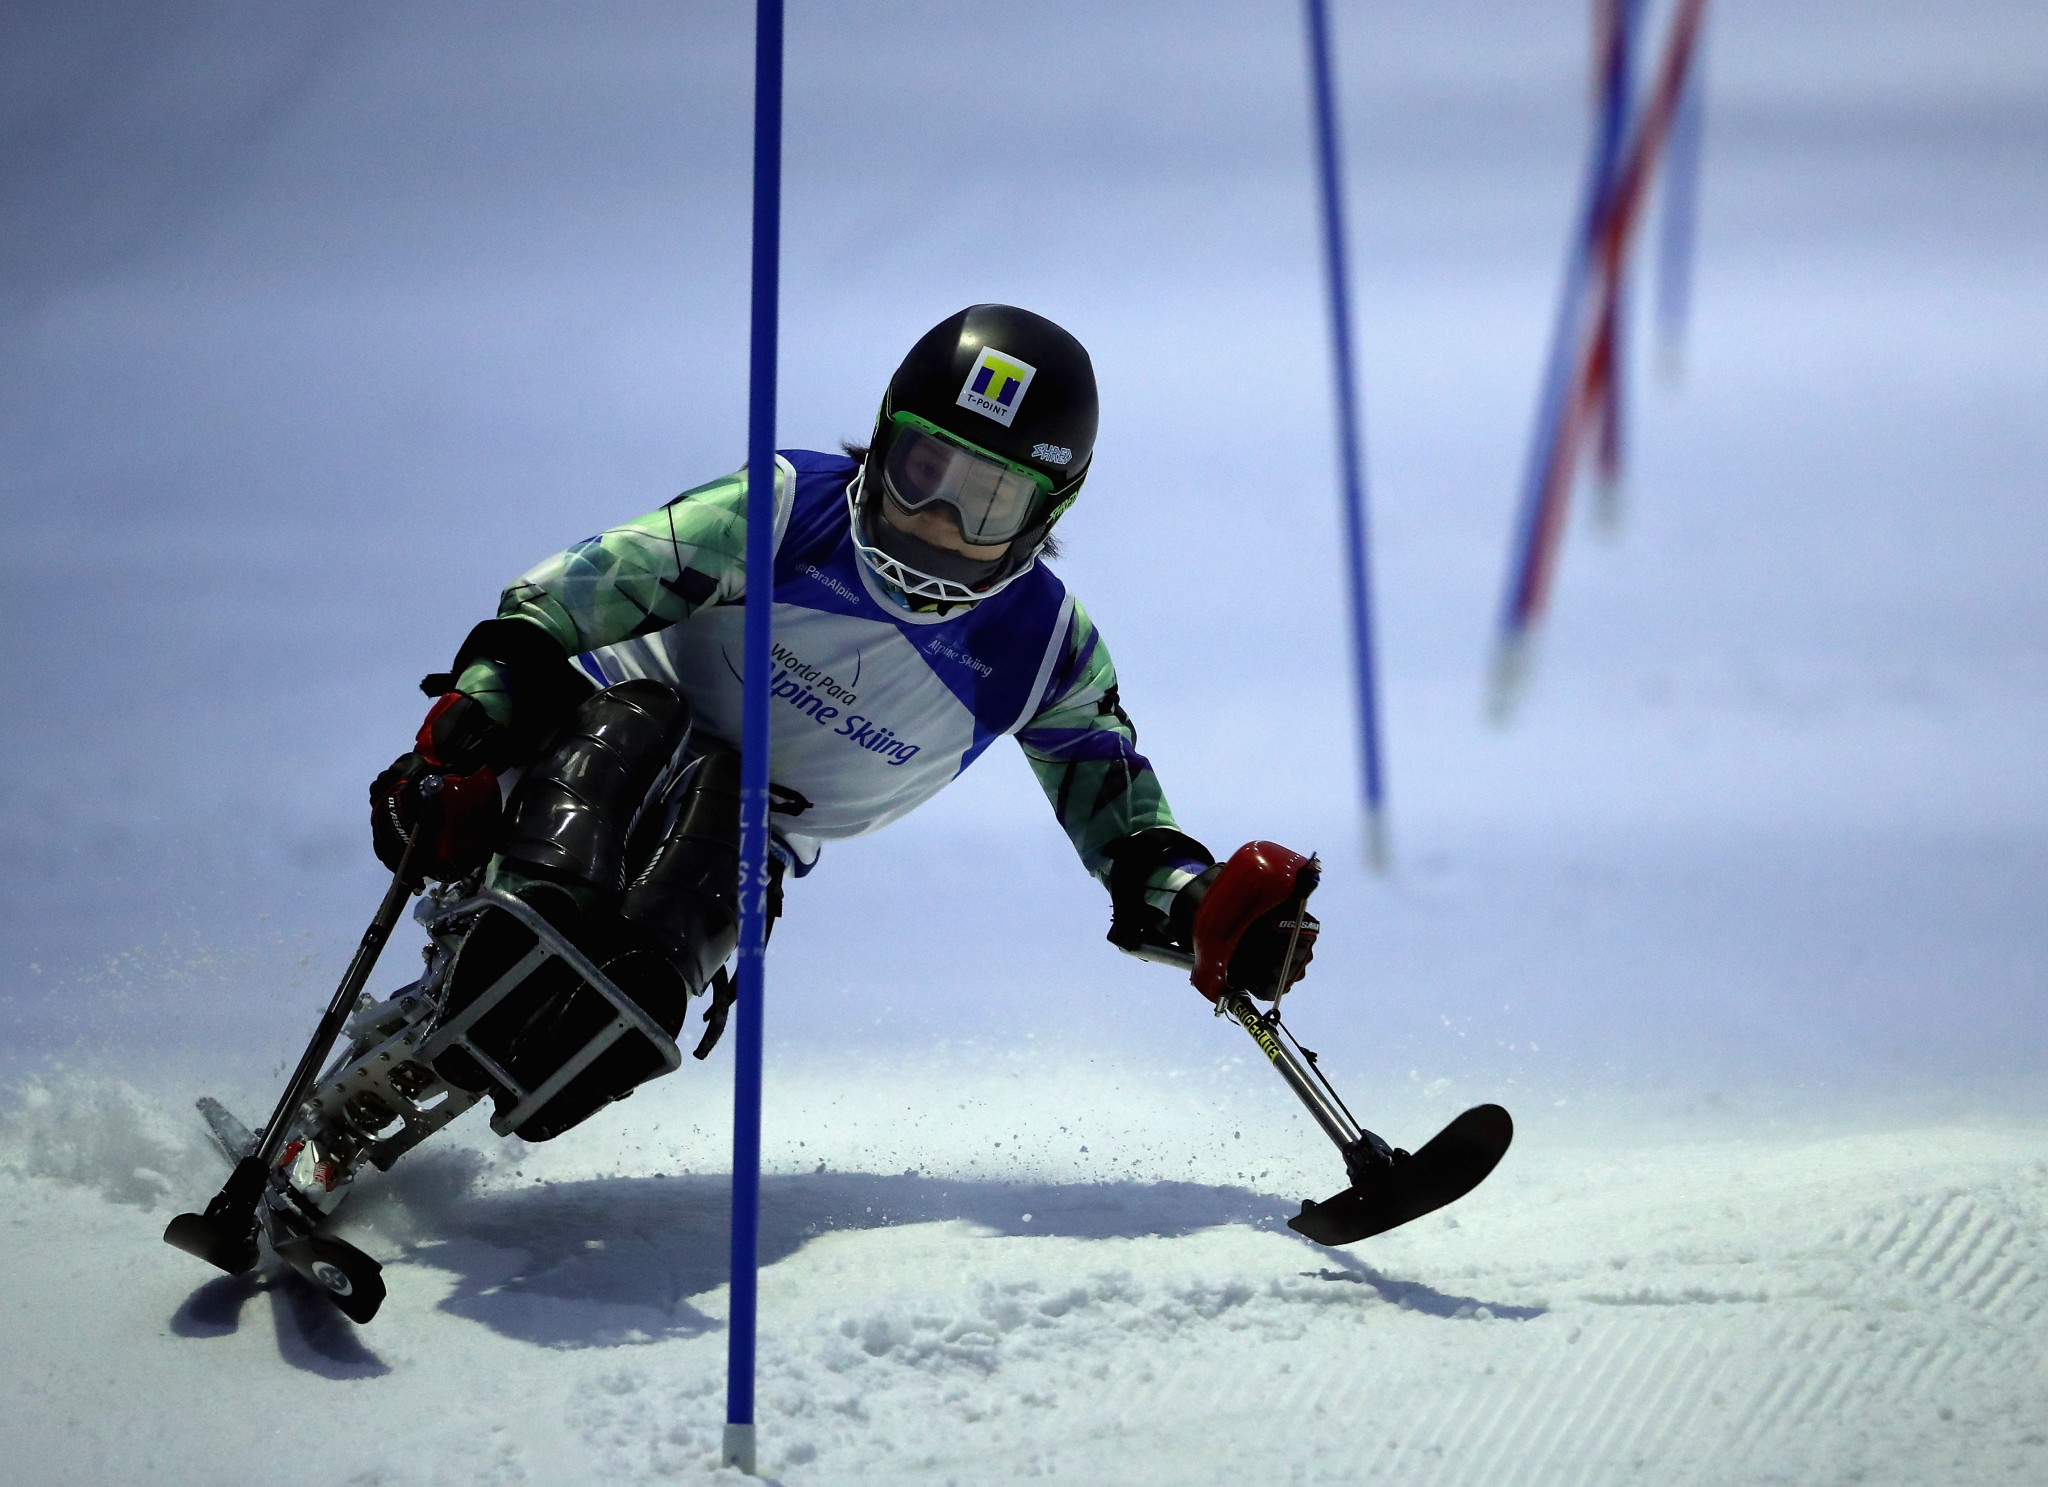 Skiers ready for Para Alpine Skiing World Cup in Zagreb prior to World Championships